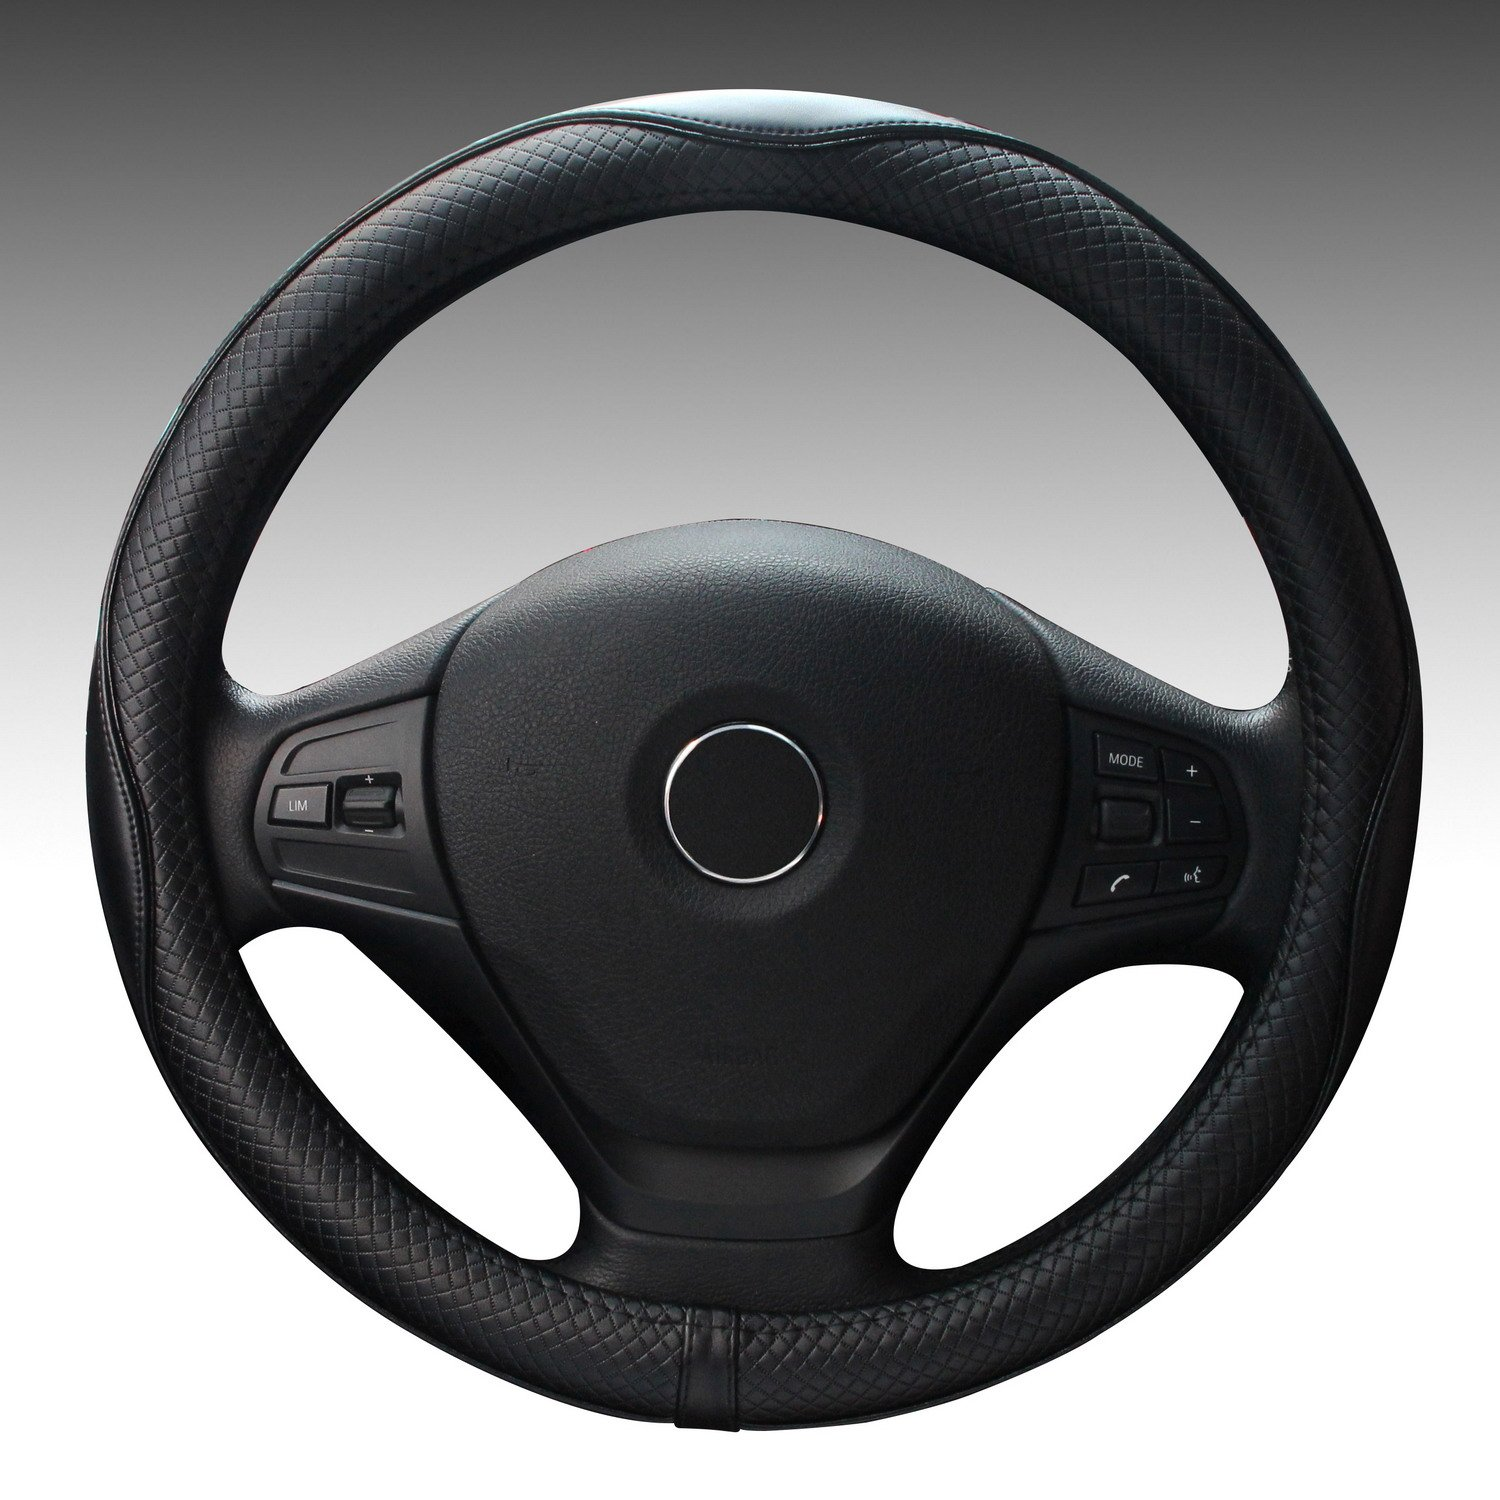 Premium Genuine Leather Steering Wheel Cover Universal 15 Inch - Anti-Slip Solid and Has Decent Traction Black